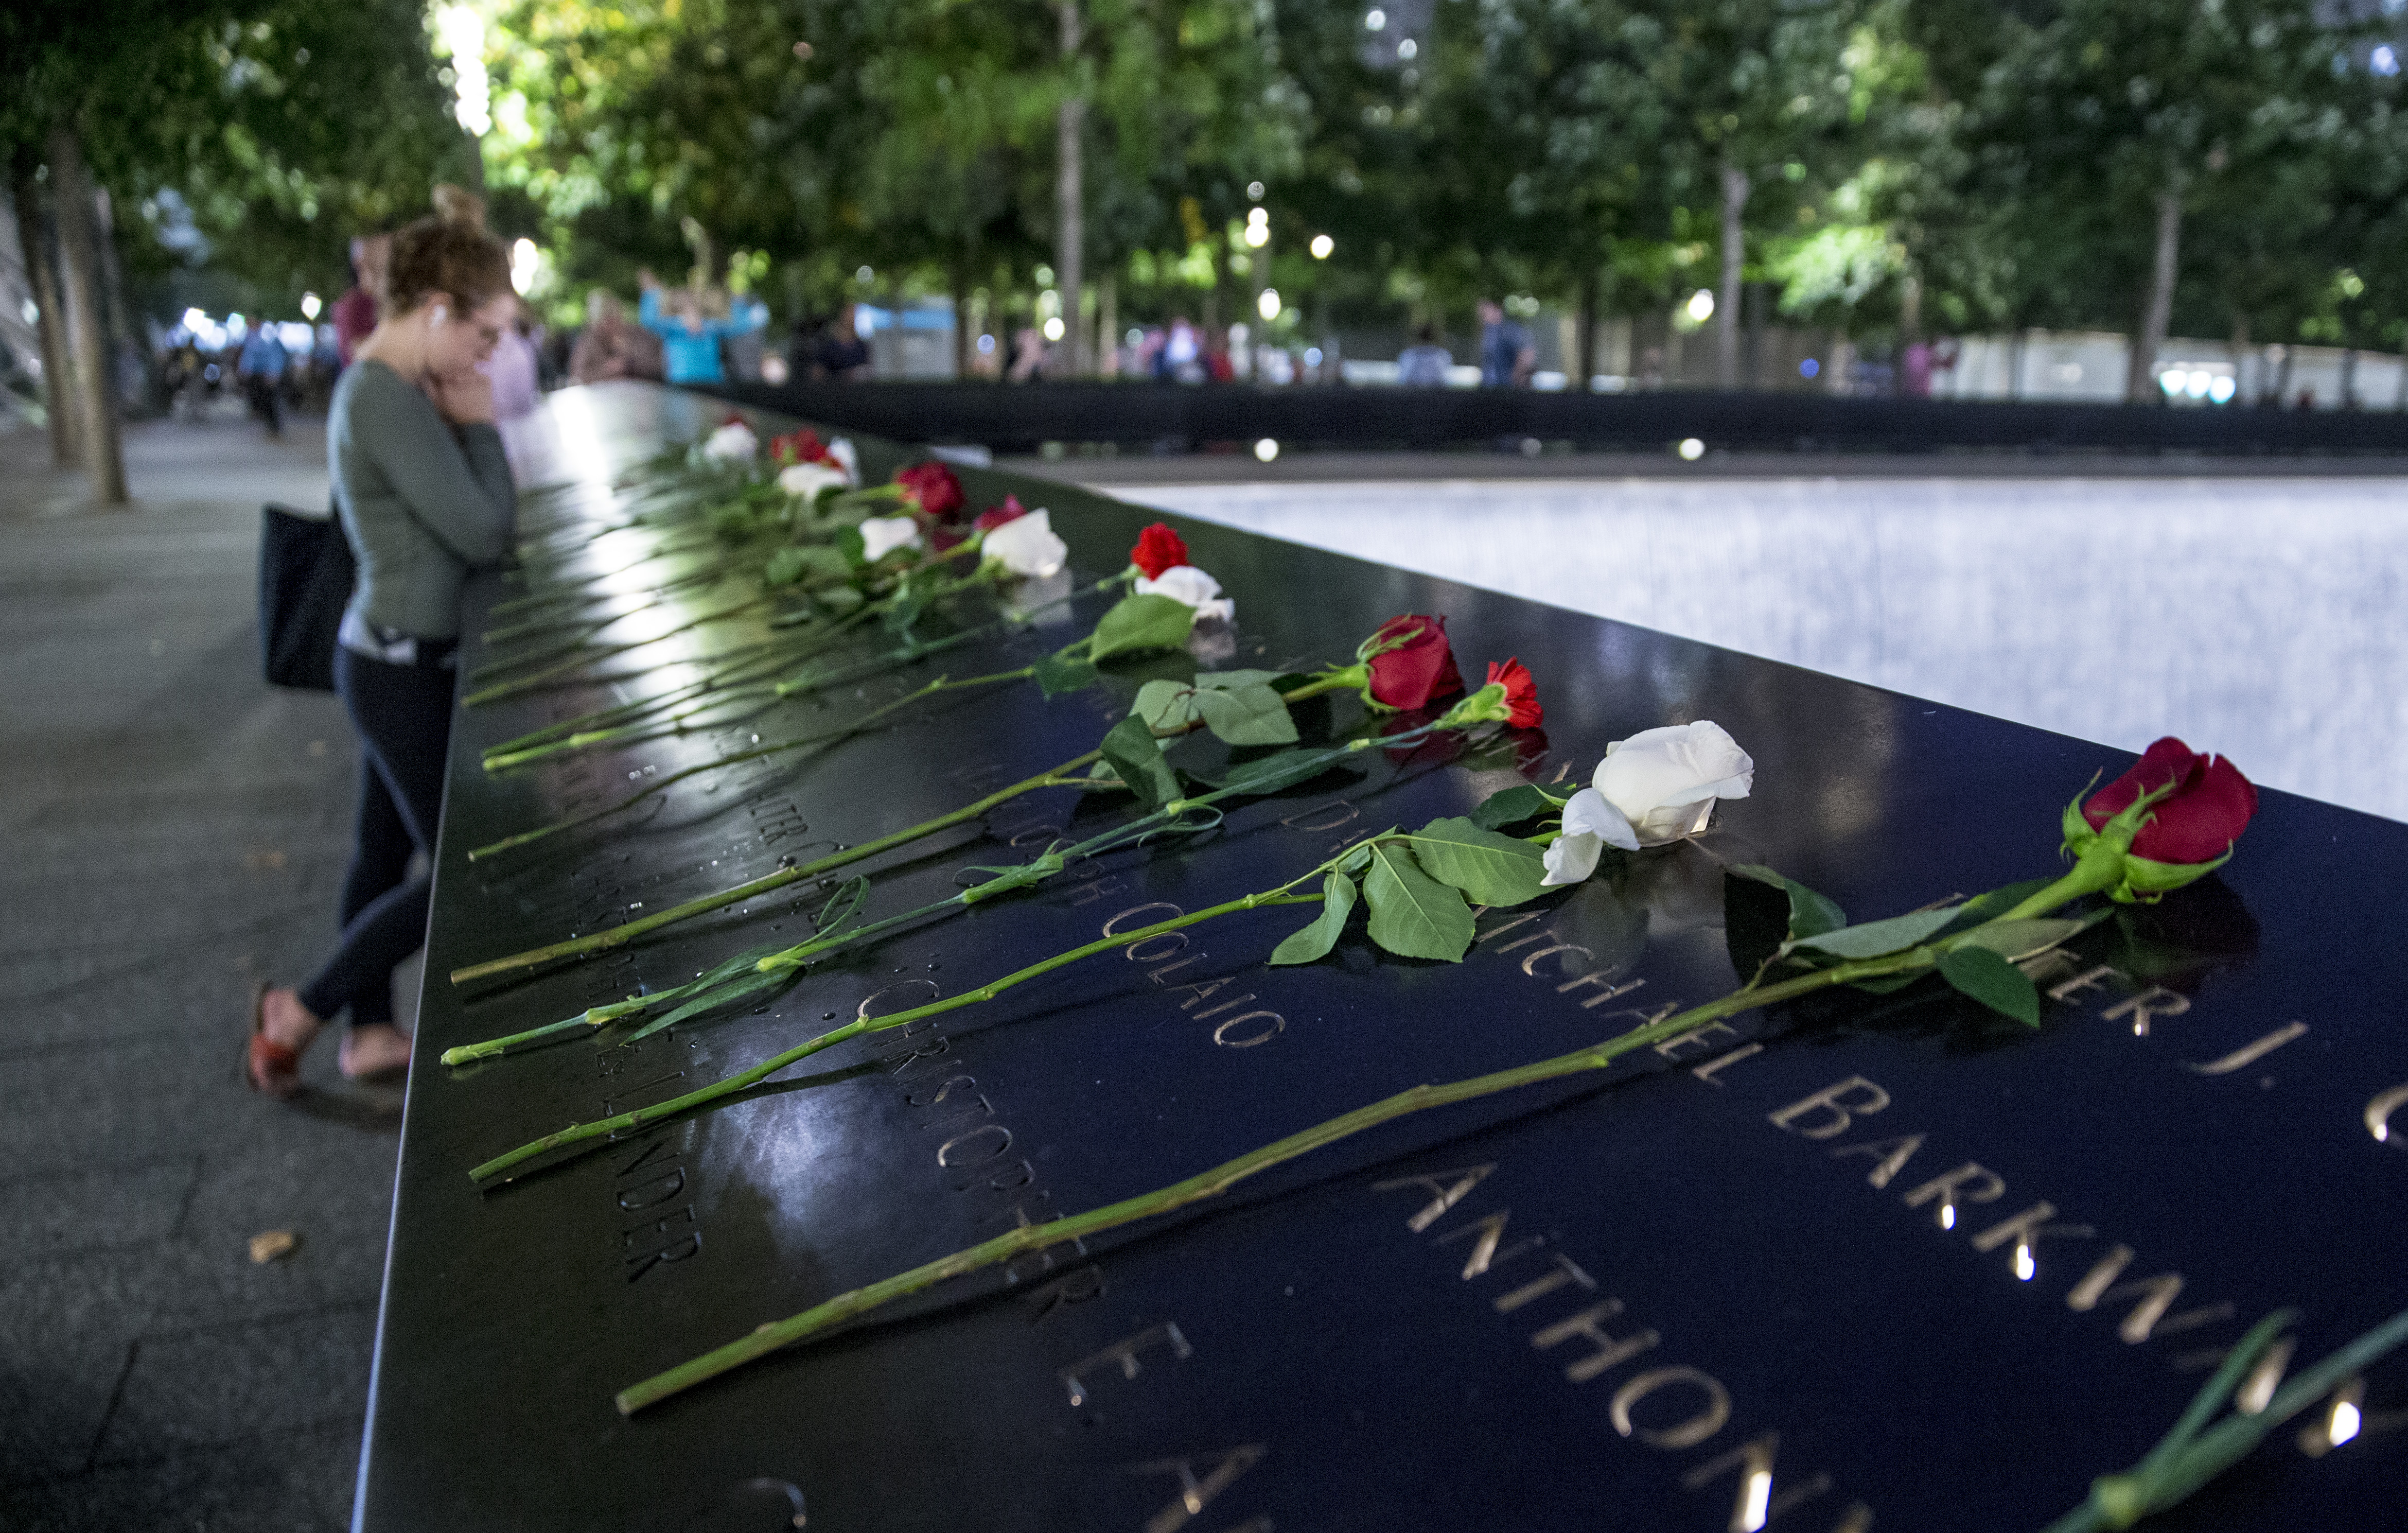 Navigate to The Lens: Capturing Life and Events at the 9/11 Memorial and Museum page